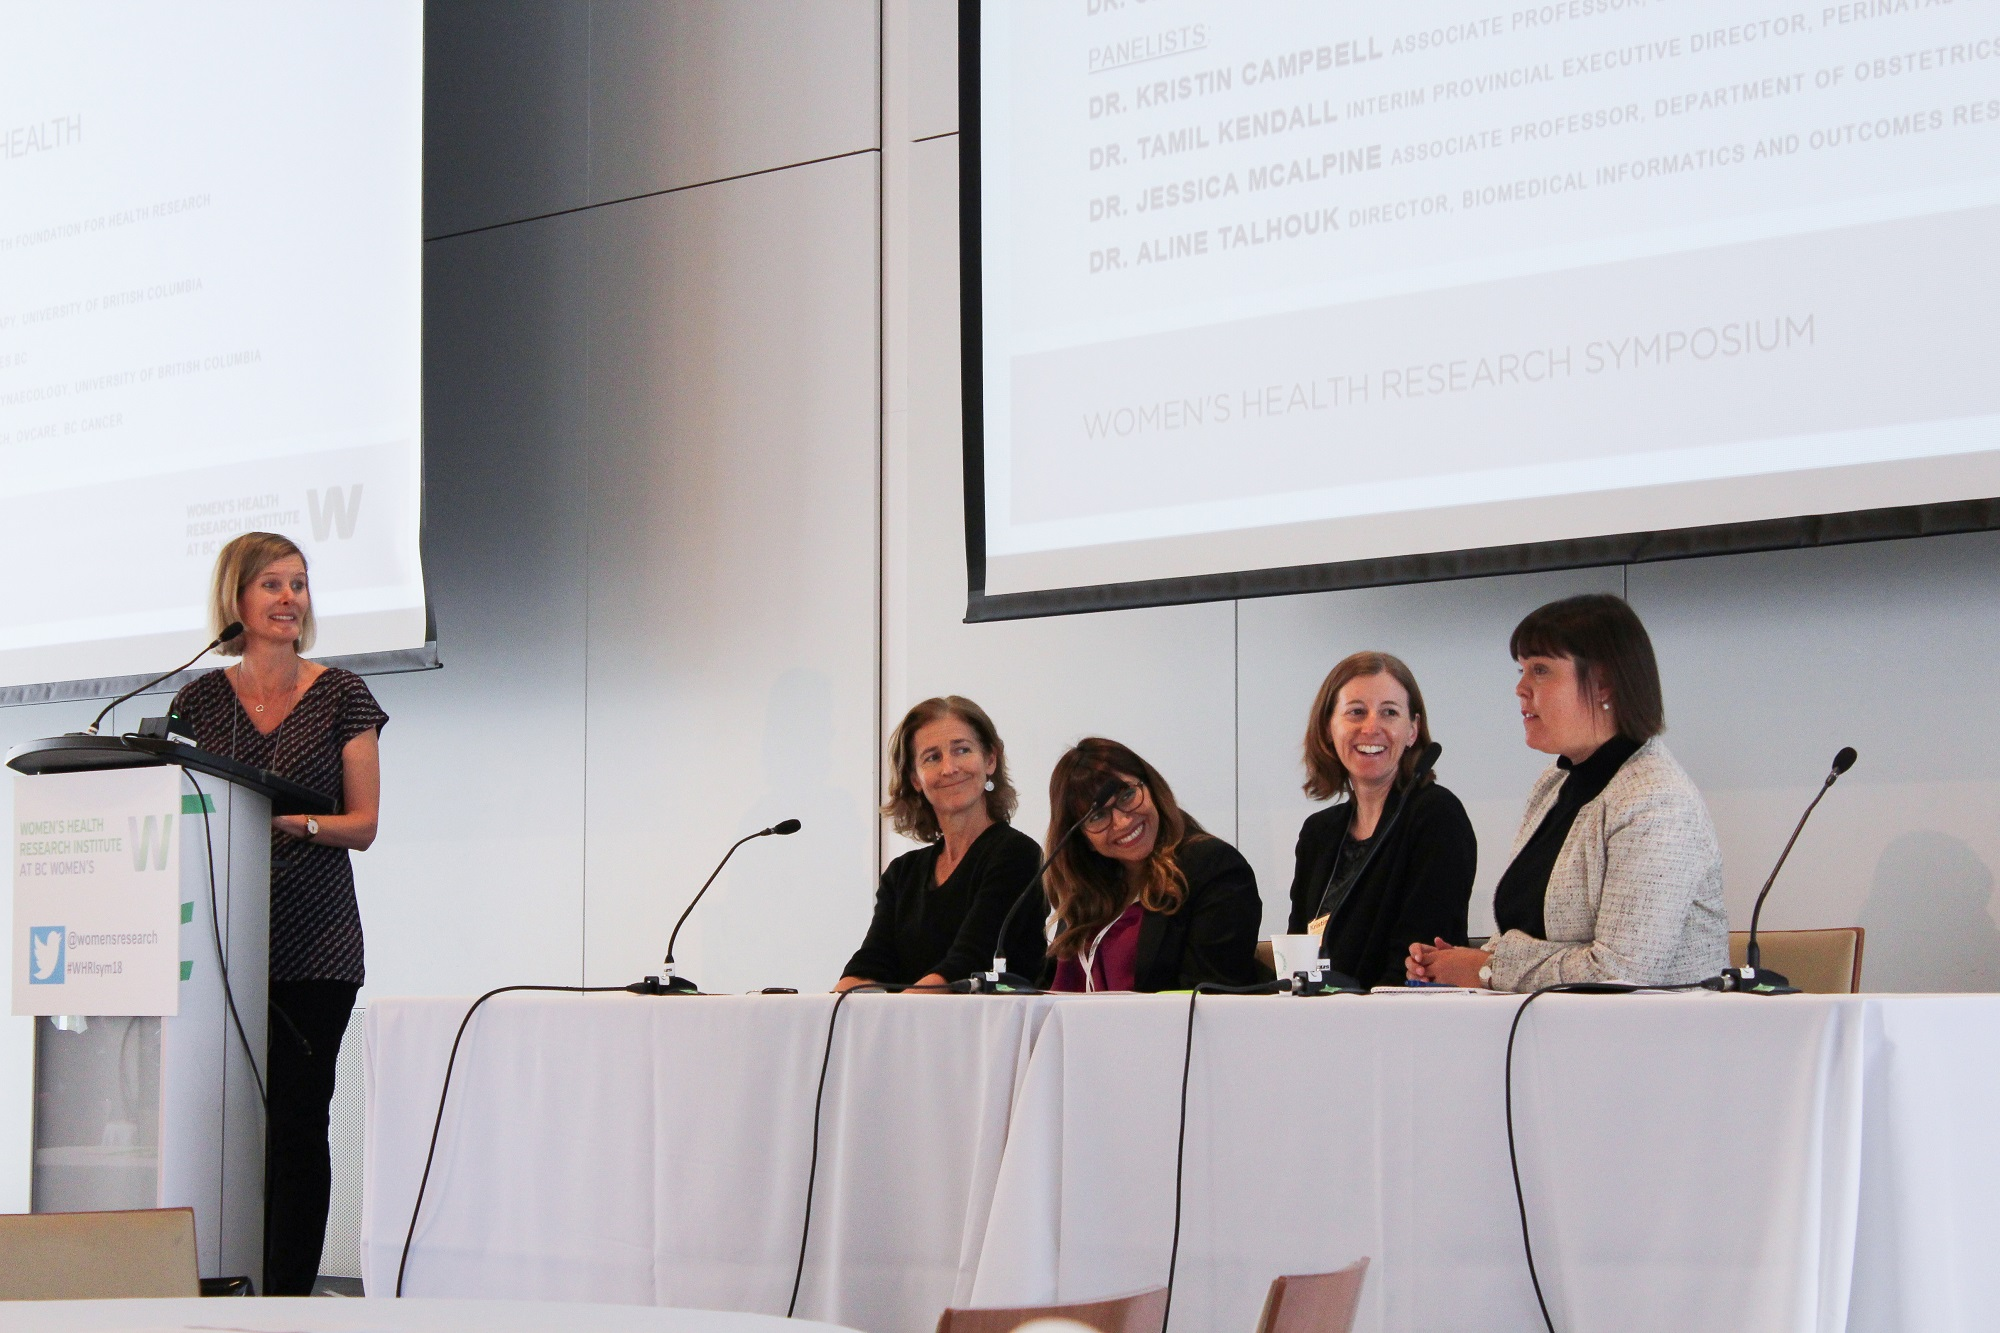 Drs. Genevieve Creighton, Jessica McAlpine, Aline Talhouk, Kristin Campbell, and Tamil Kendall talking during a facilitated panel discussion